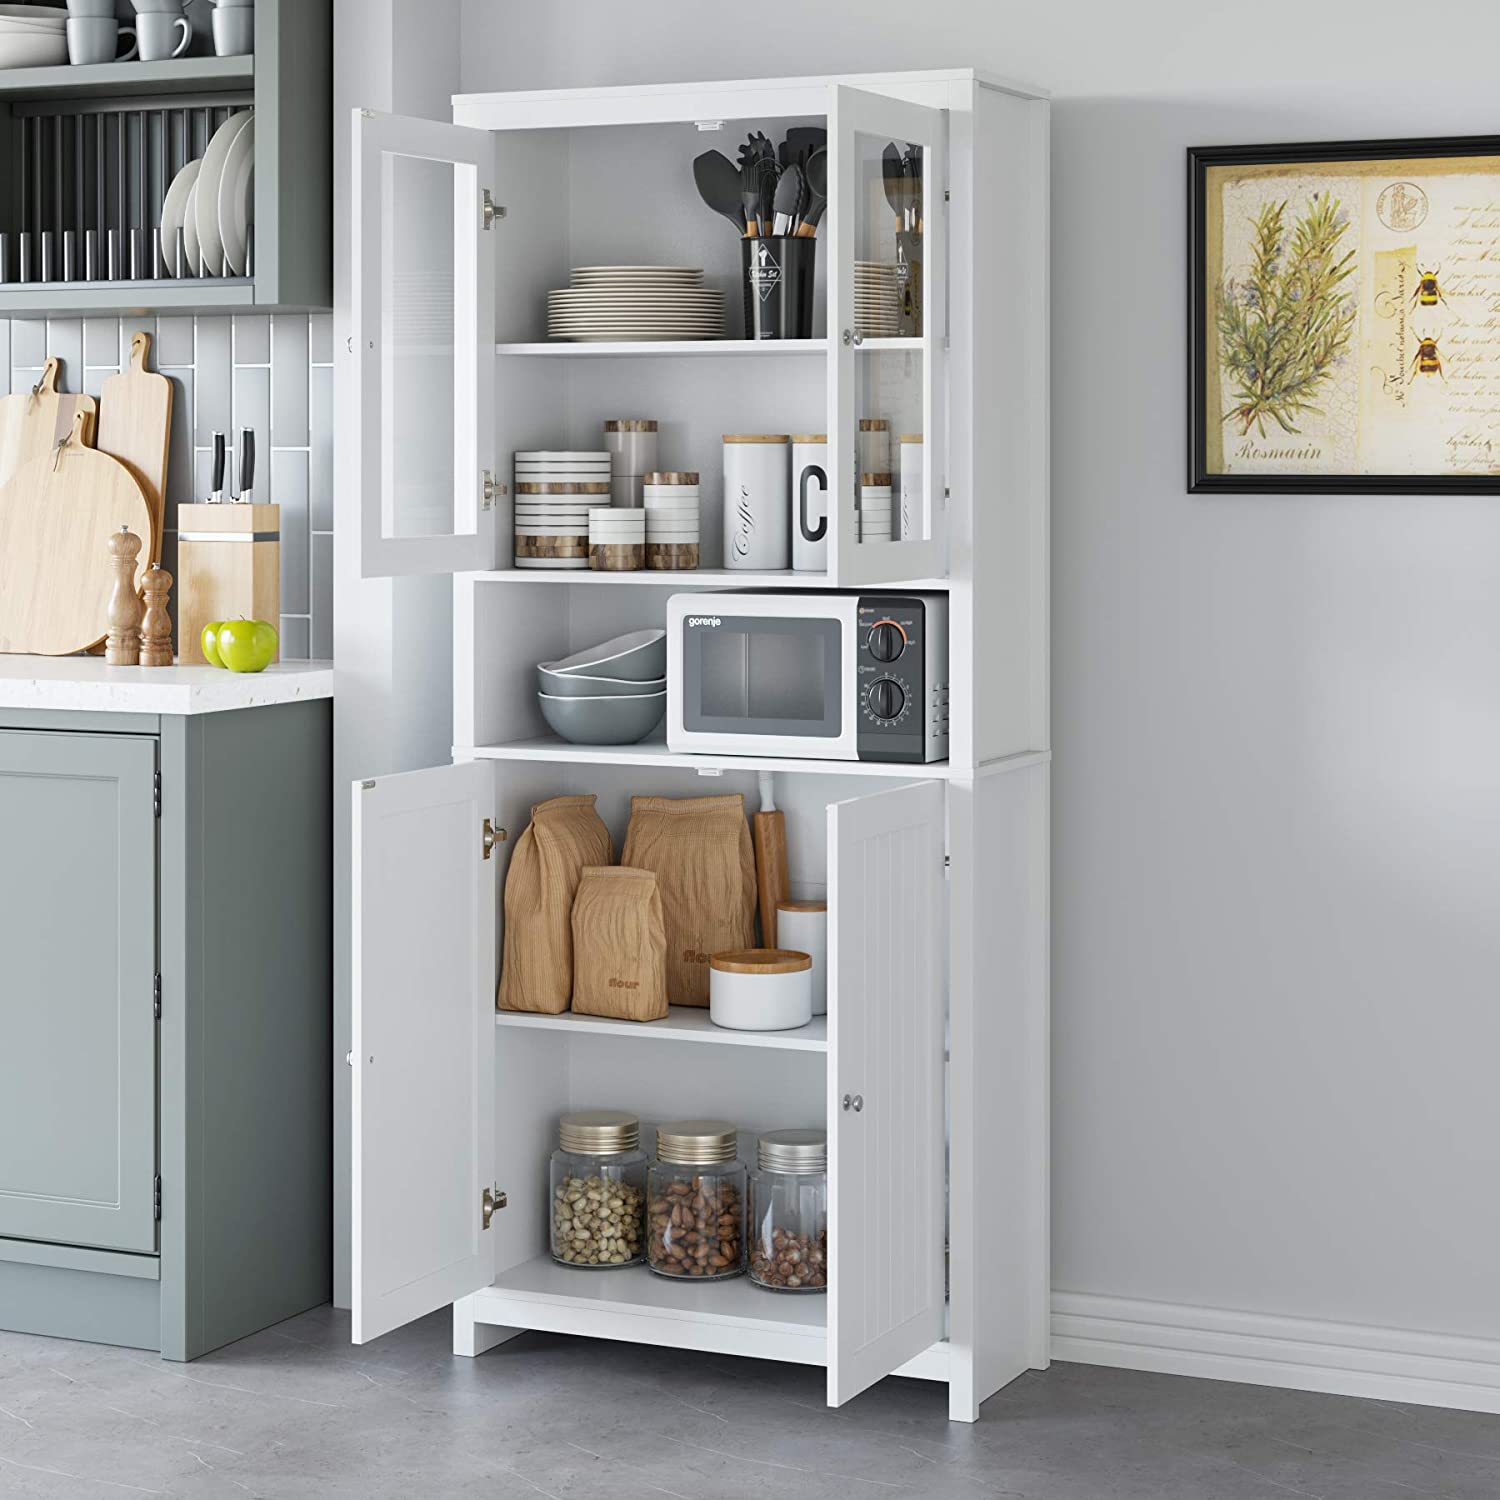 Traditional Elegant Design for Living Room Kitchen Hallway Homfa 74.8 Inch Bookcase Kitchen Buffet Cupboard Cabinet White Freestanding Pantry and Hutch with Framed Glass Doors and Open Shelf